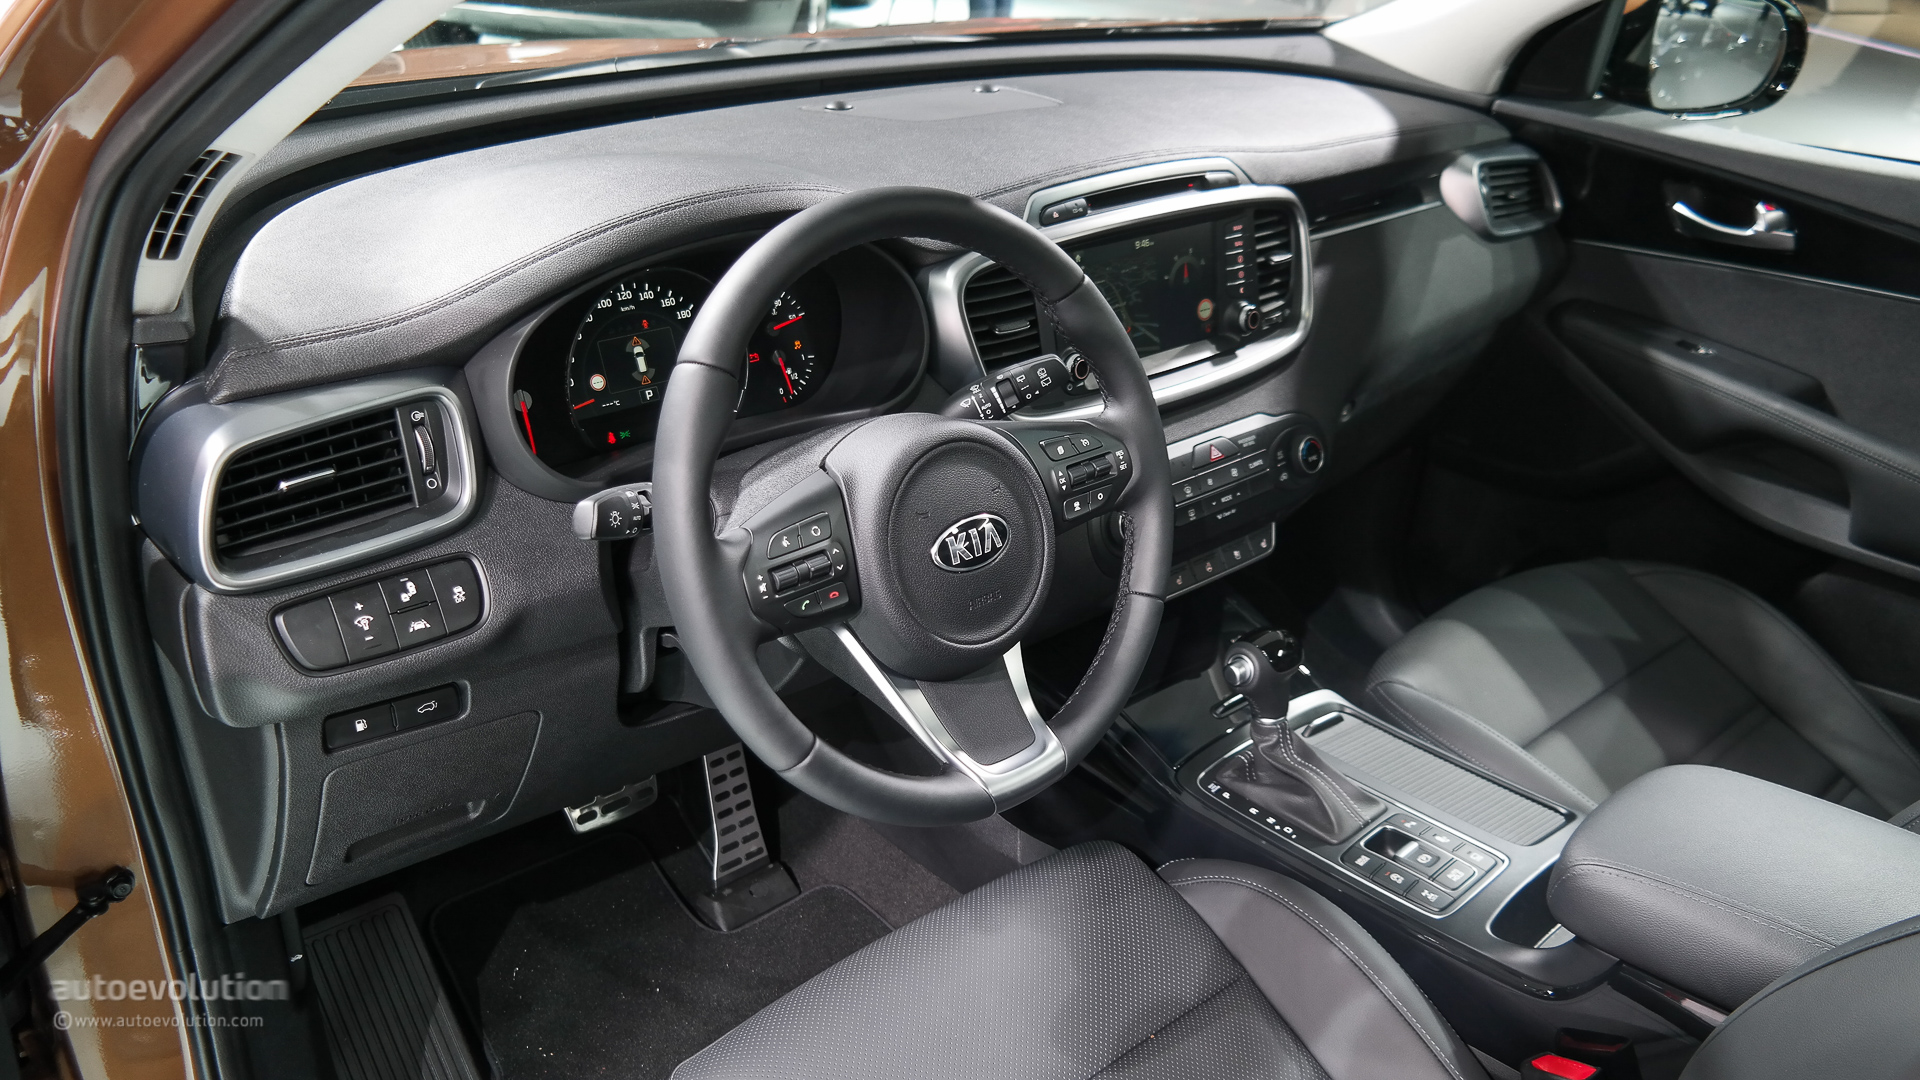 marvelous-design-of-the-black-seats-and-dash-ideas-with-black-steering-wheels-as-the-kia-sorento-2015-interior